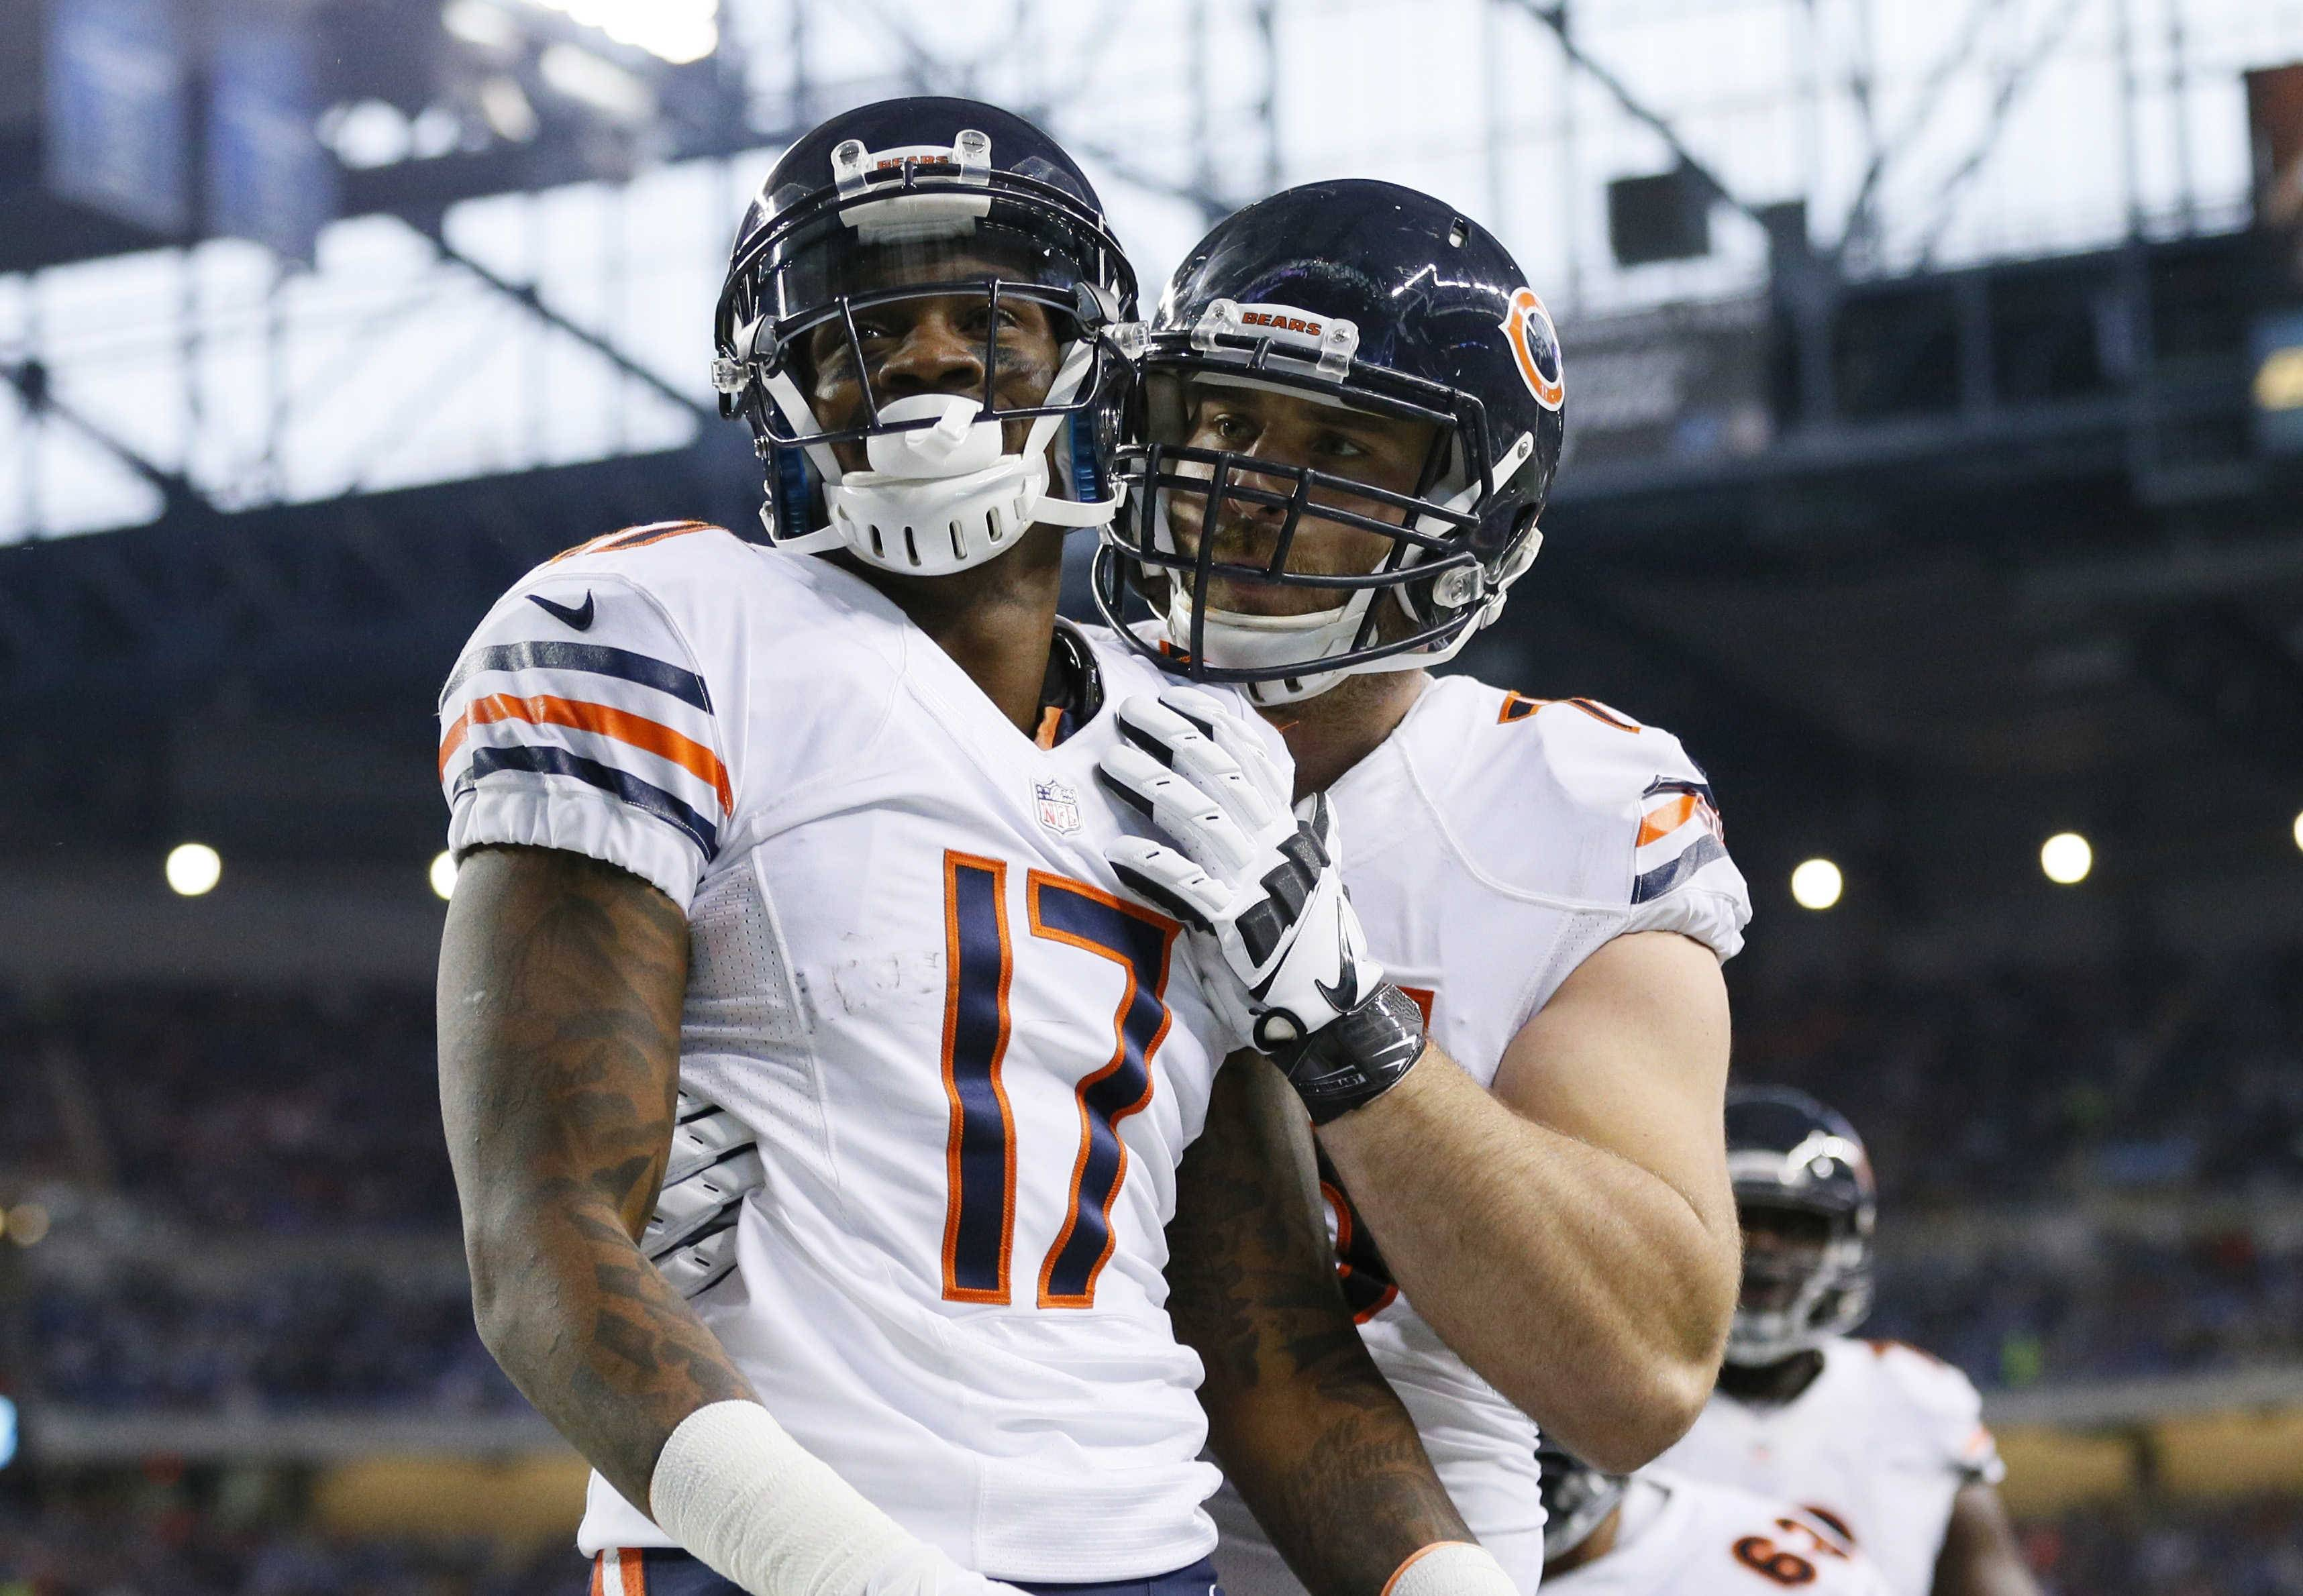 Chicago Bears wide receiver Alshon Jeffery is congratulated after his 6-yard touchdown reception during the first half of an NFL football game against the Detroit Lions in Detroit, Thursday, Nov. 27, 2014.